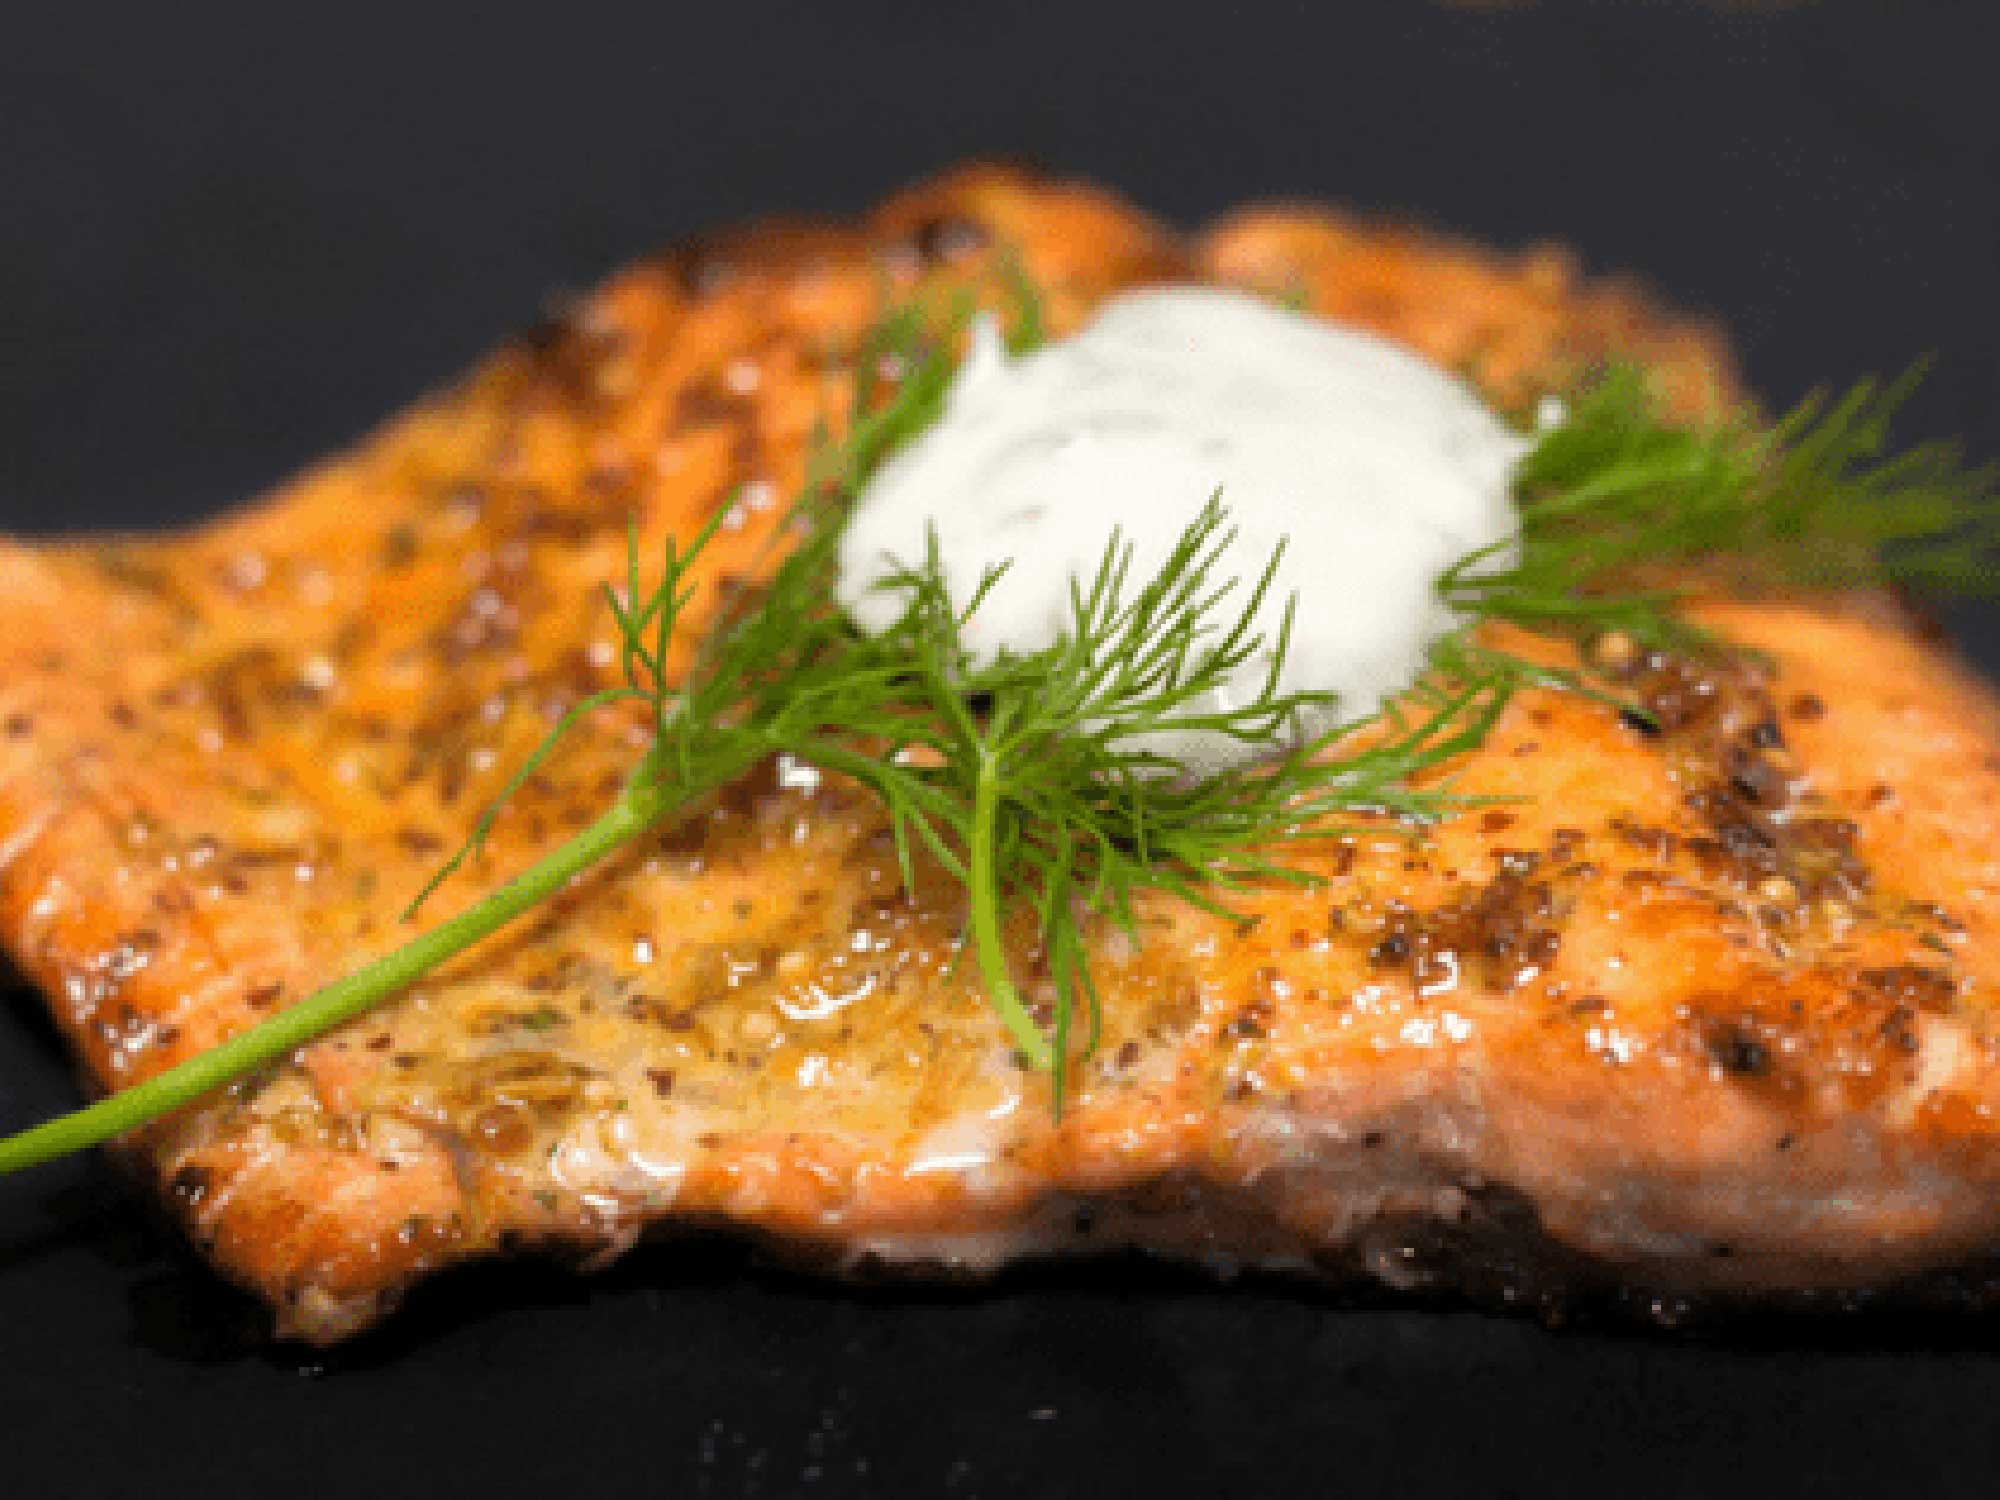 Sous Vide Salmon with Crispy Skin & Lemon Dill Sauce